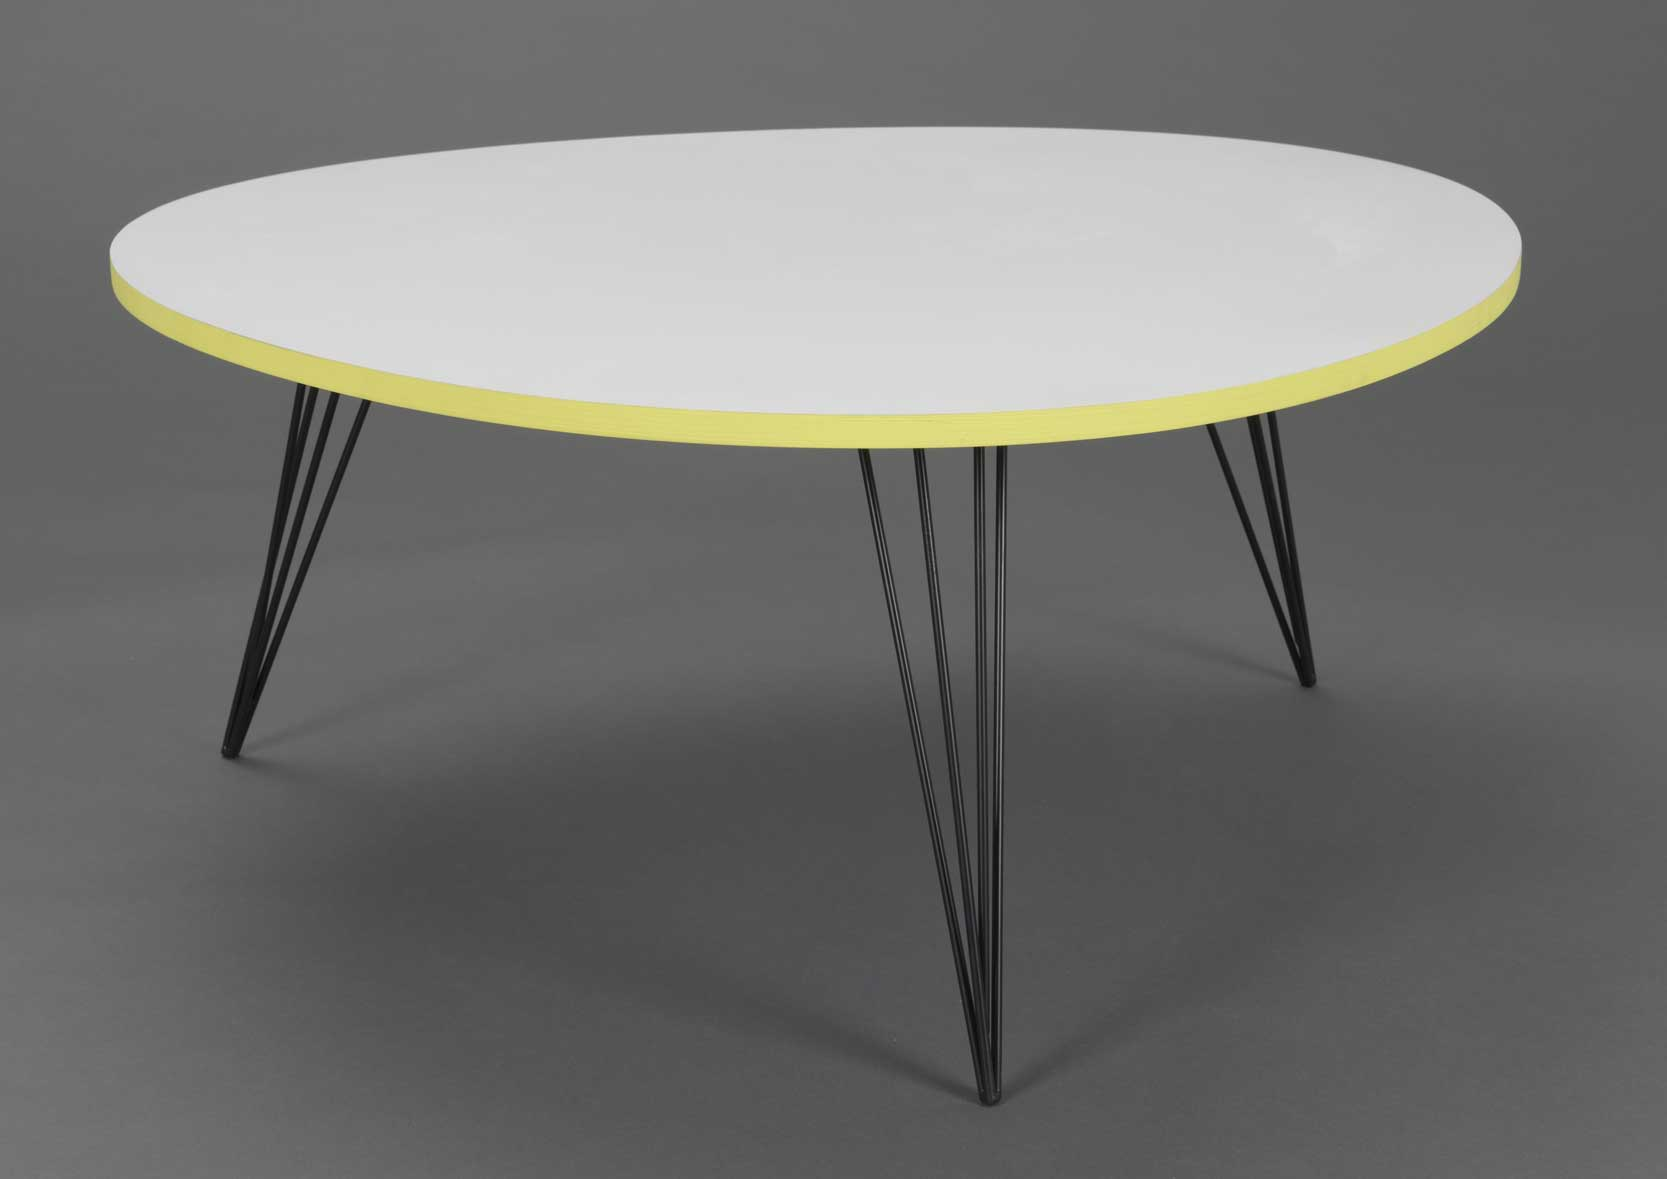 table basse ronde blanche et jaune. Black Bedroom Furniture Sets. Home Design Ideas